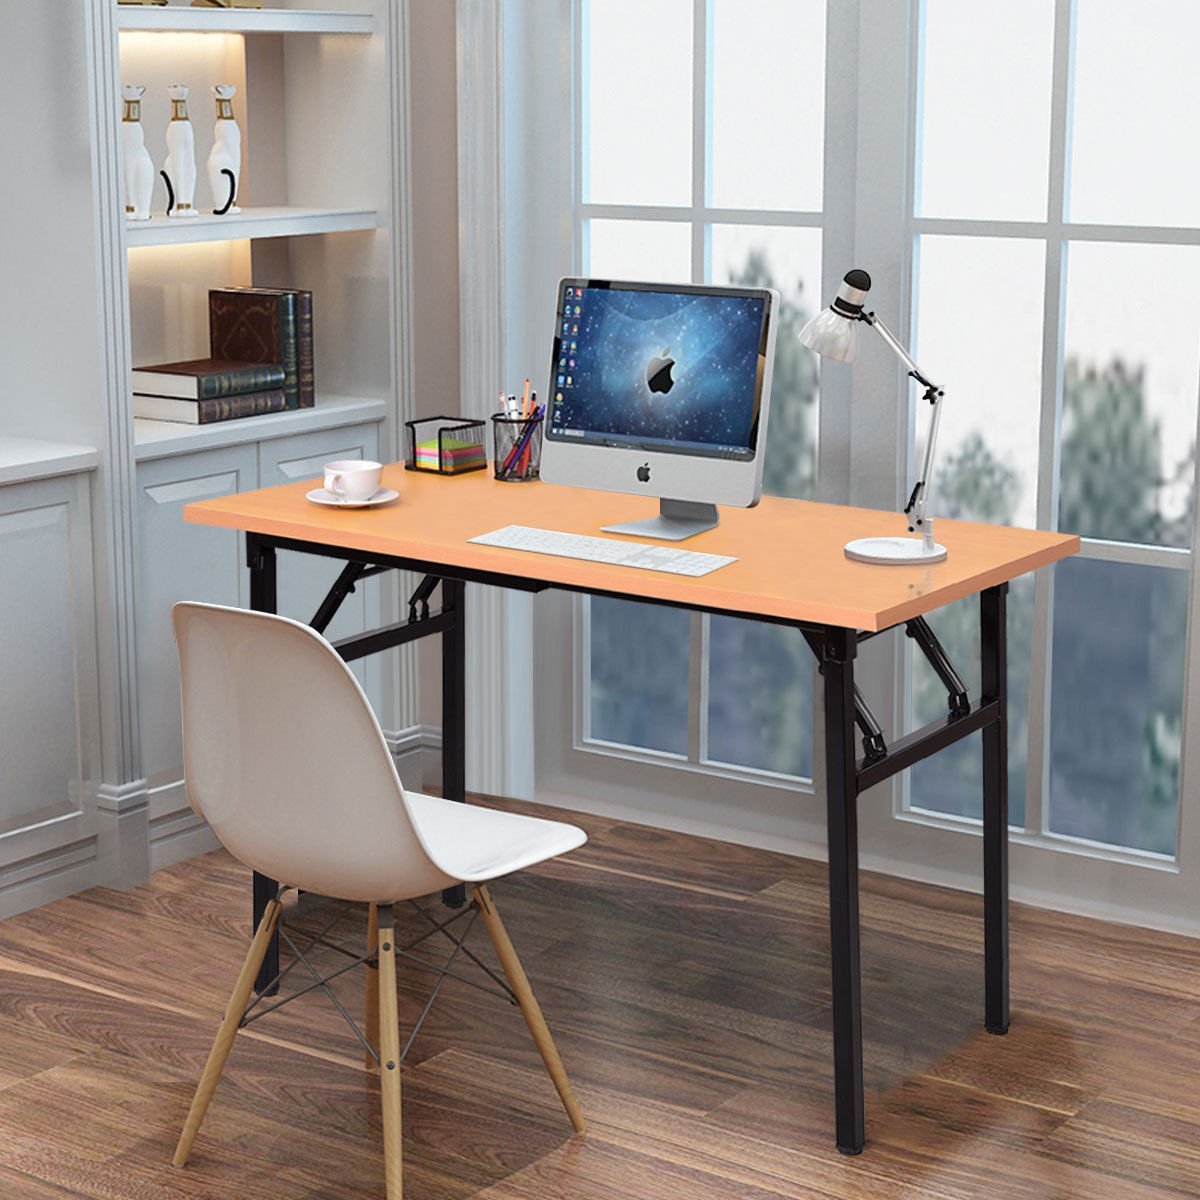 Folding computer desk pc laptop table writing workstation home office furniture modern and simple design made of mdf and steel sturdy and durable